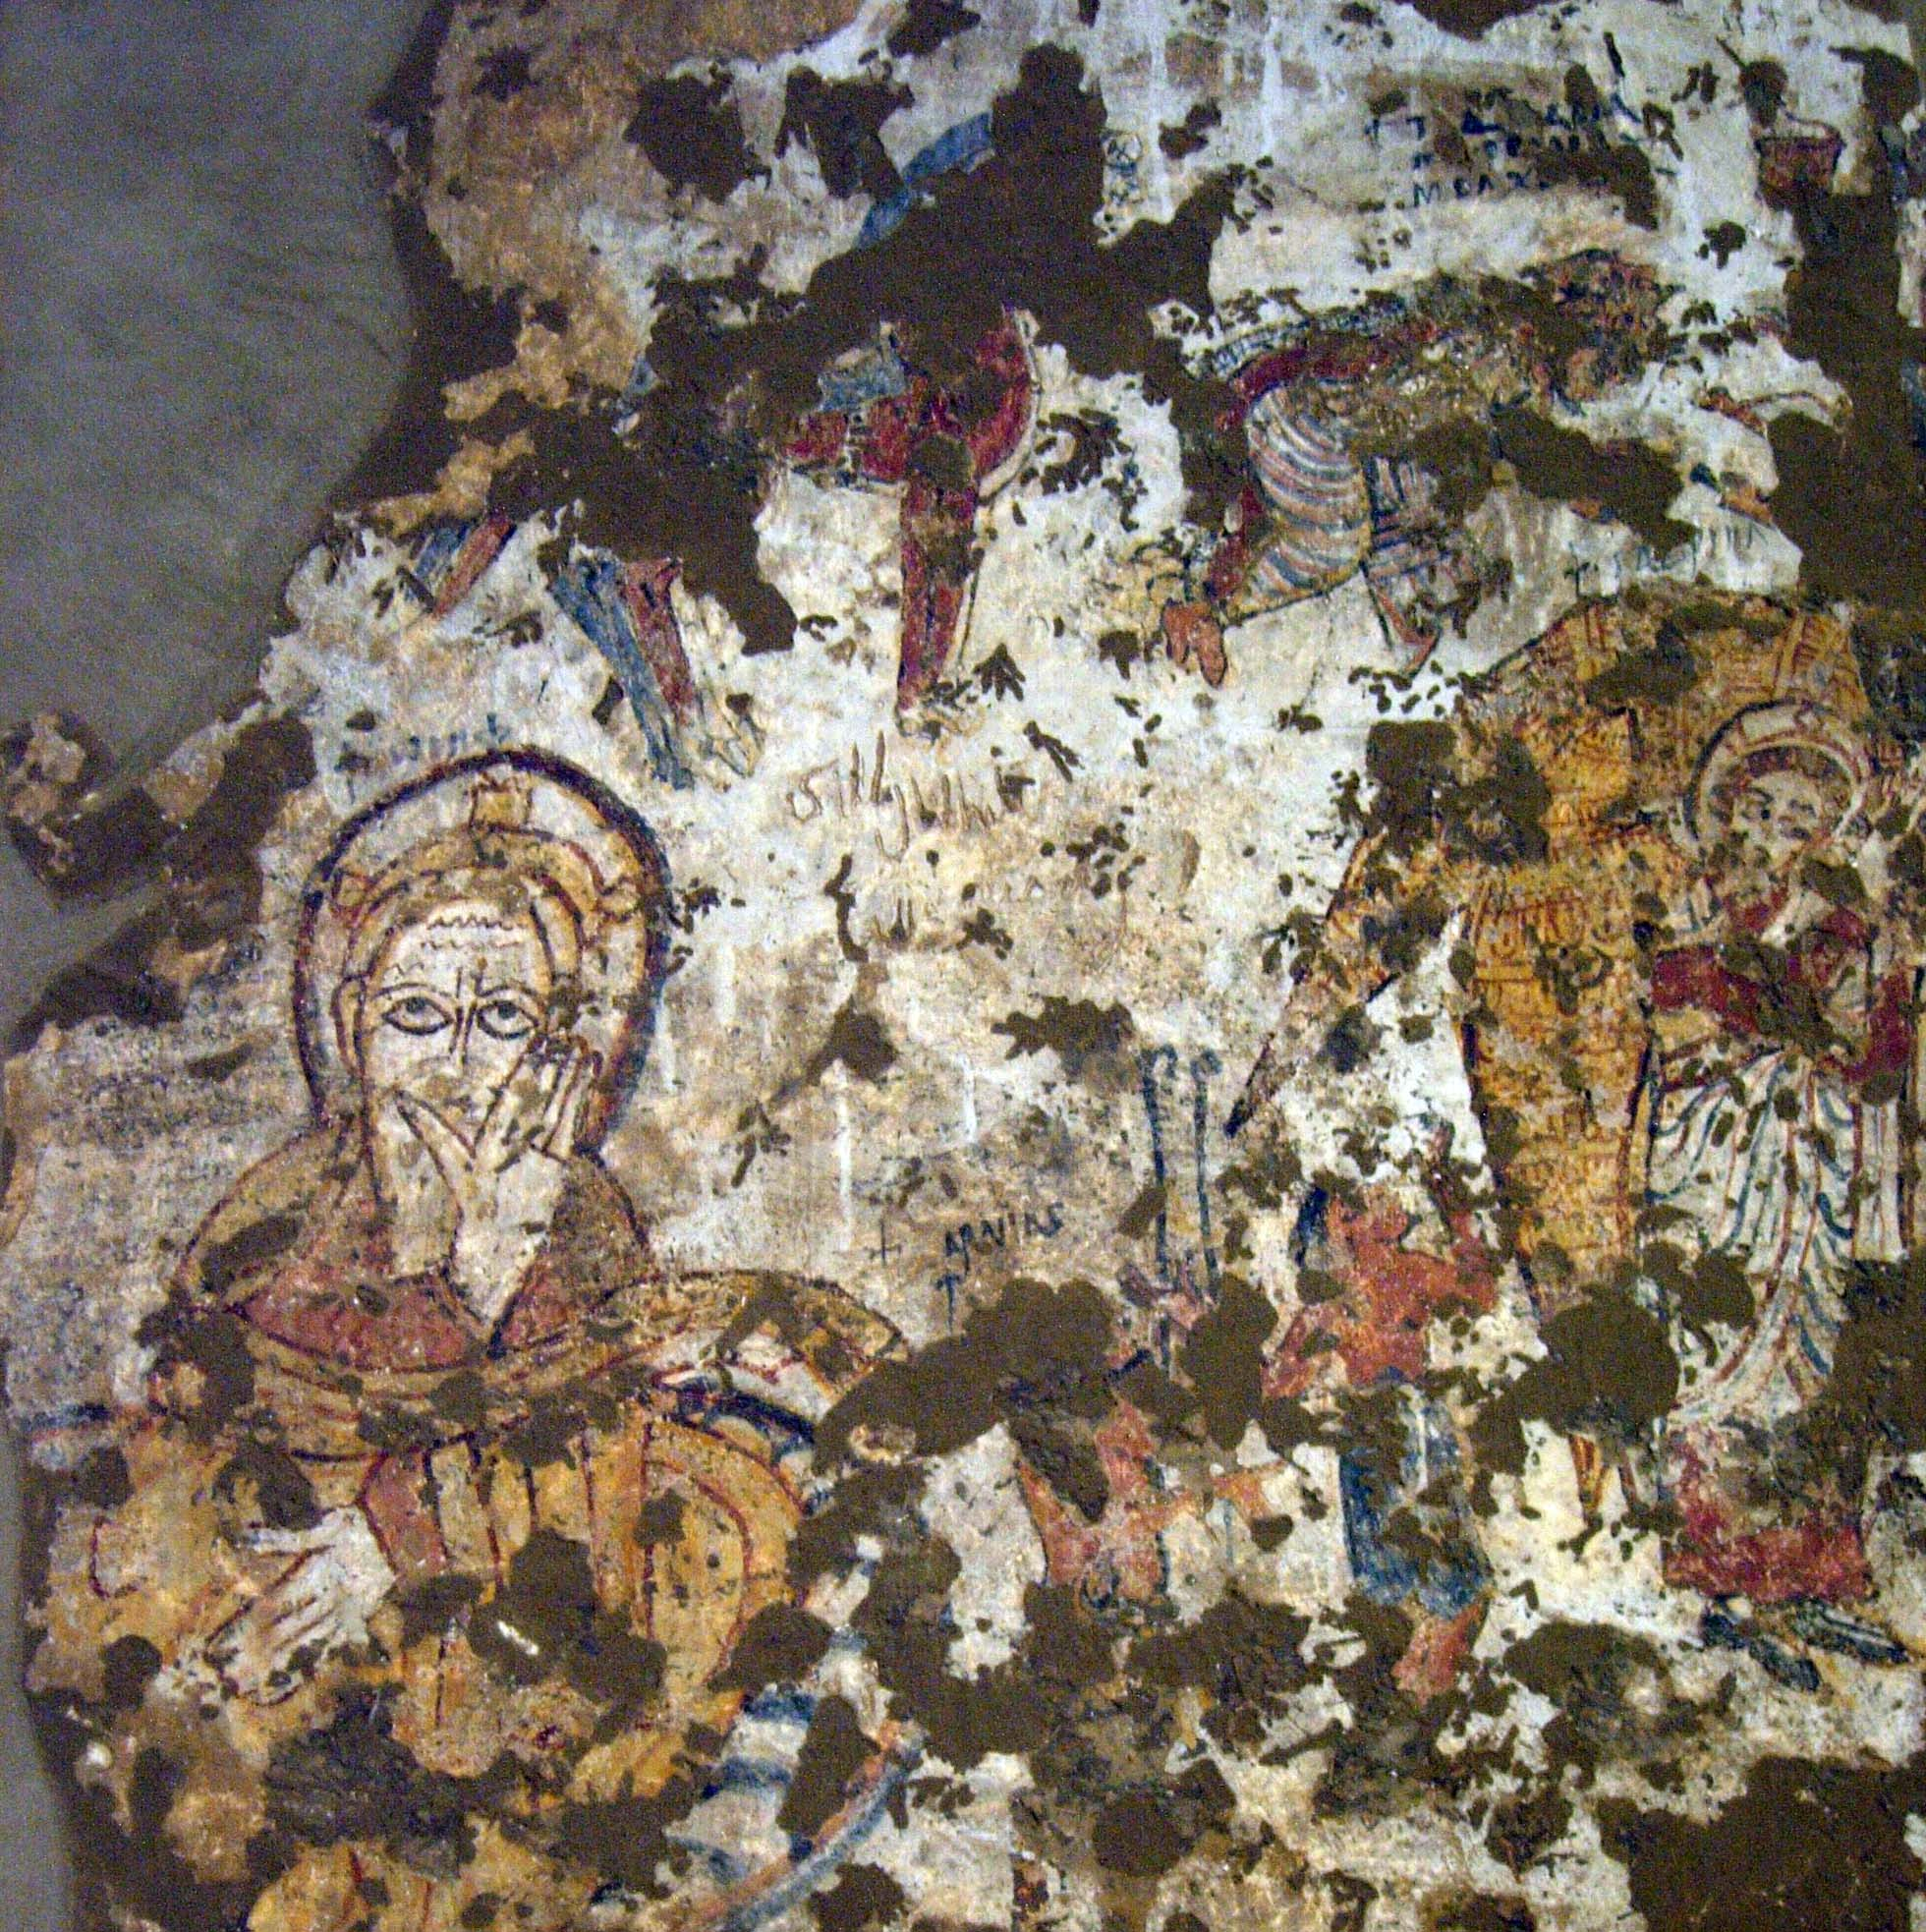 Photograph of painting on the wall of the church. The painting shows the Nativity: Joseph is on the left and an angel is on the right.